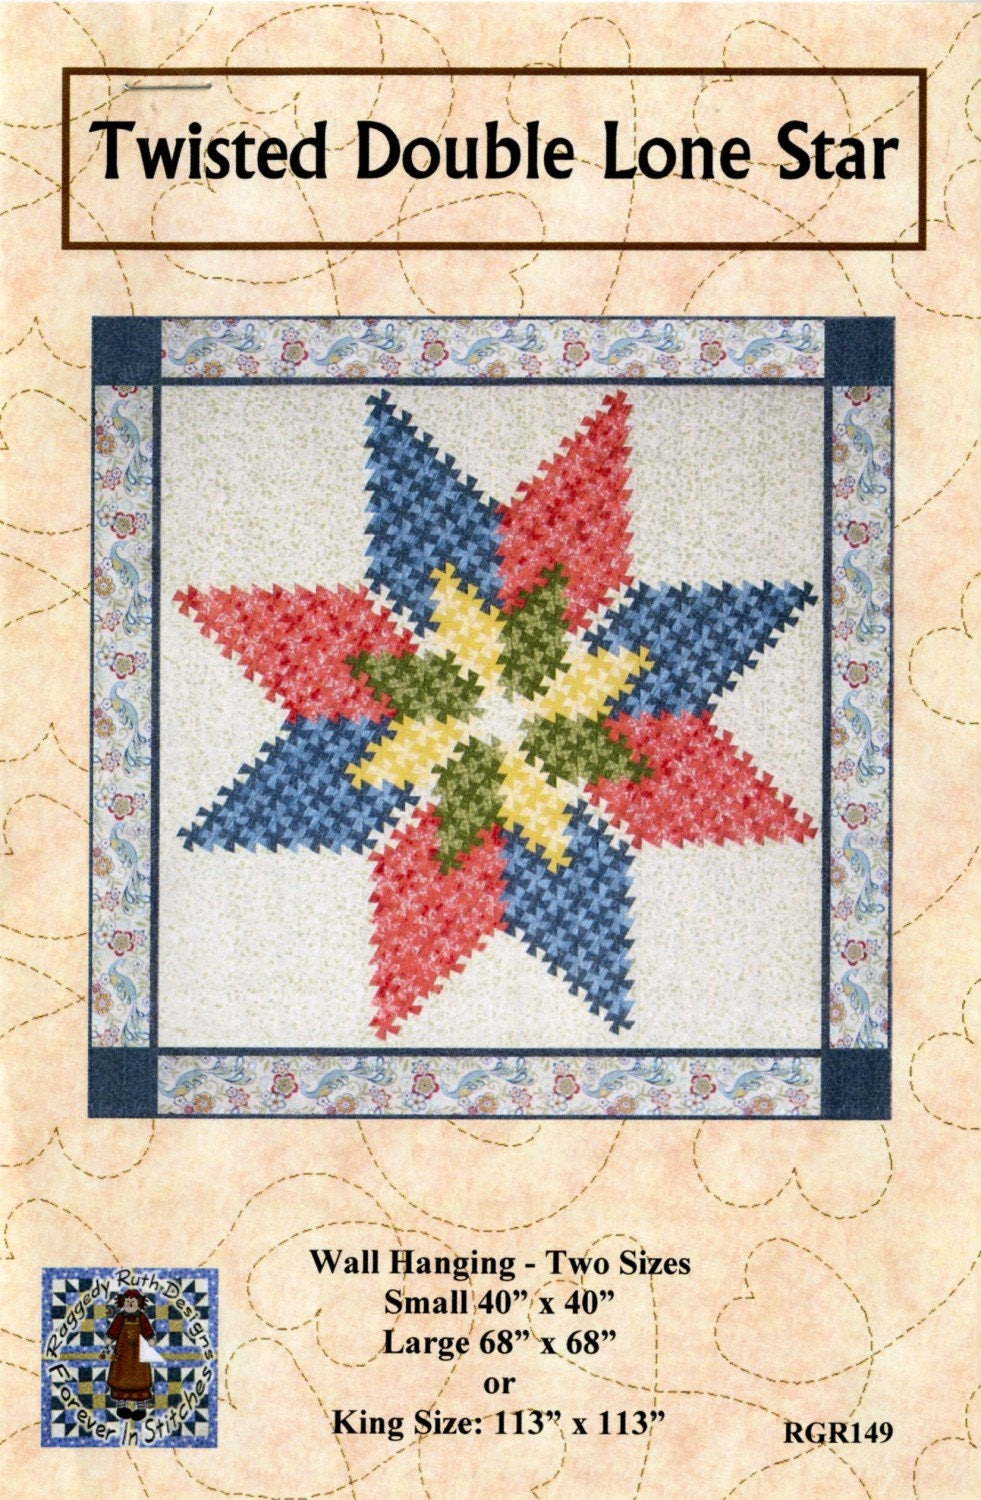 Twisted Double Lone Star Quilt Pattern Uses Twister Tool